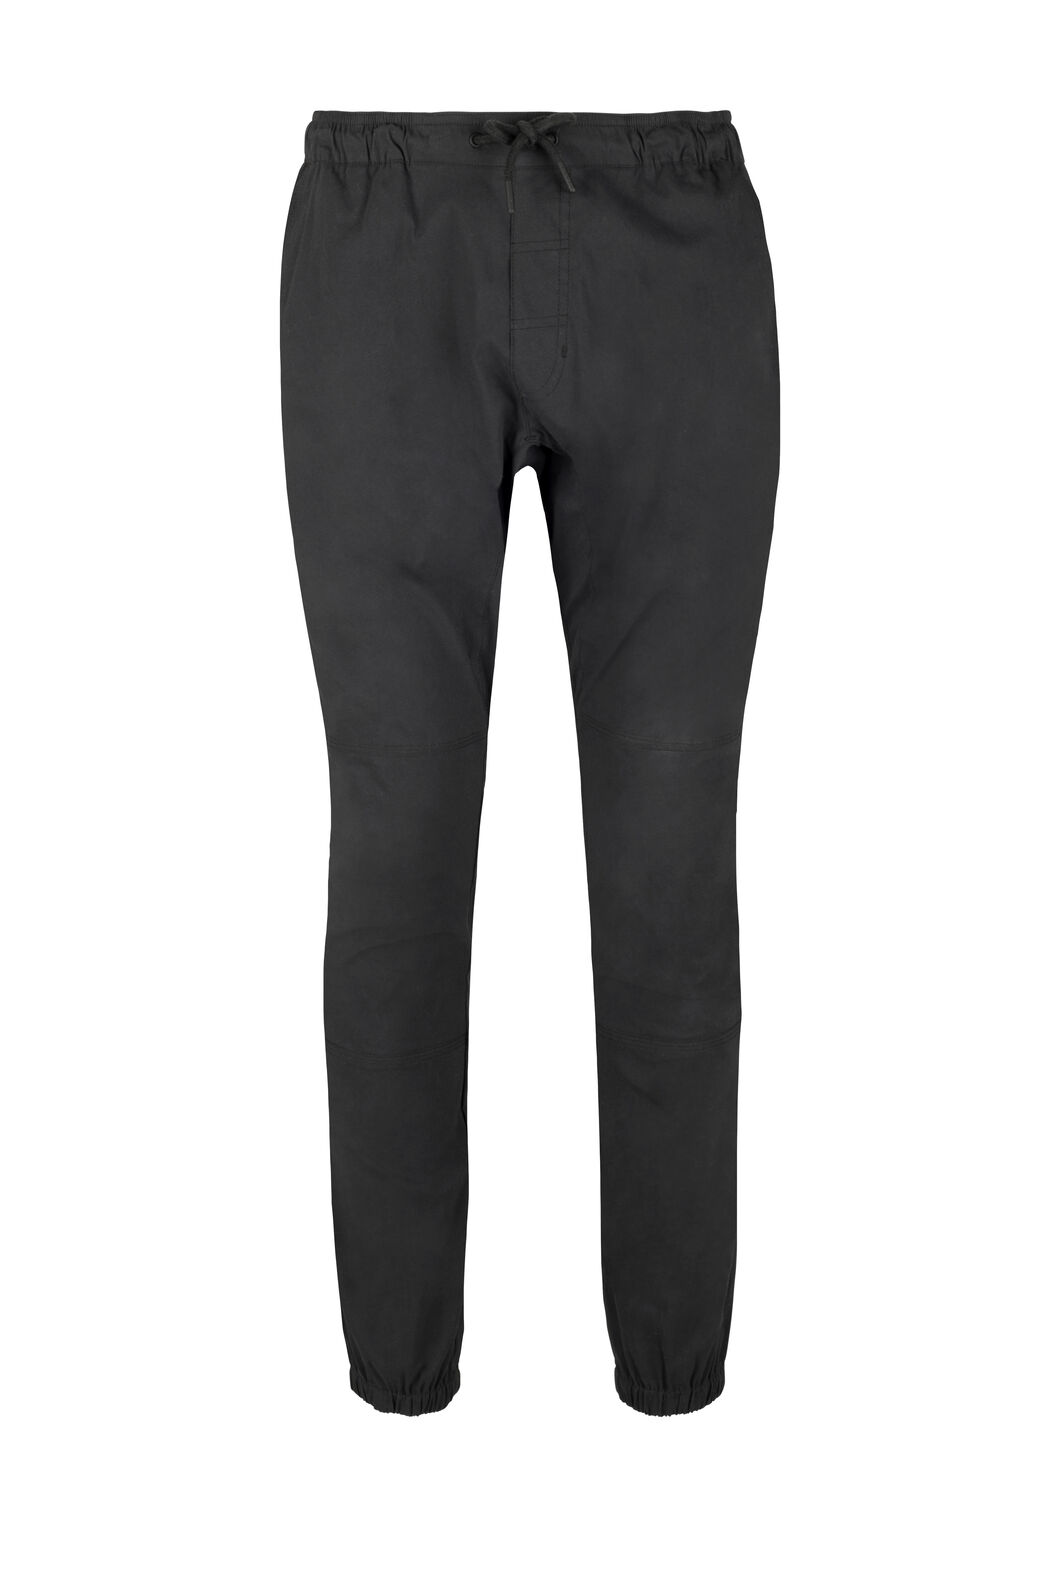 Macpac Sika Pants - Men's, Black, hi-res